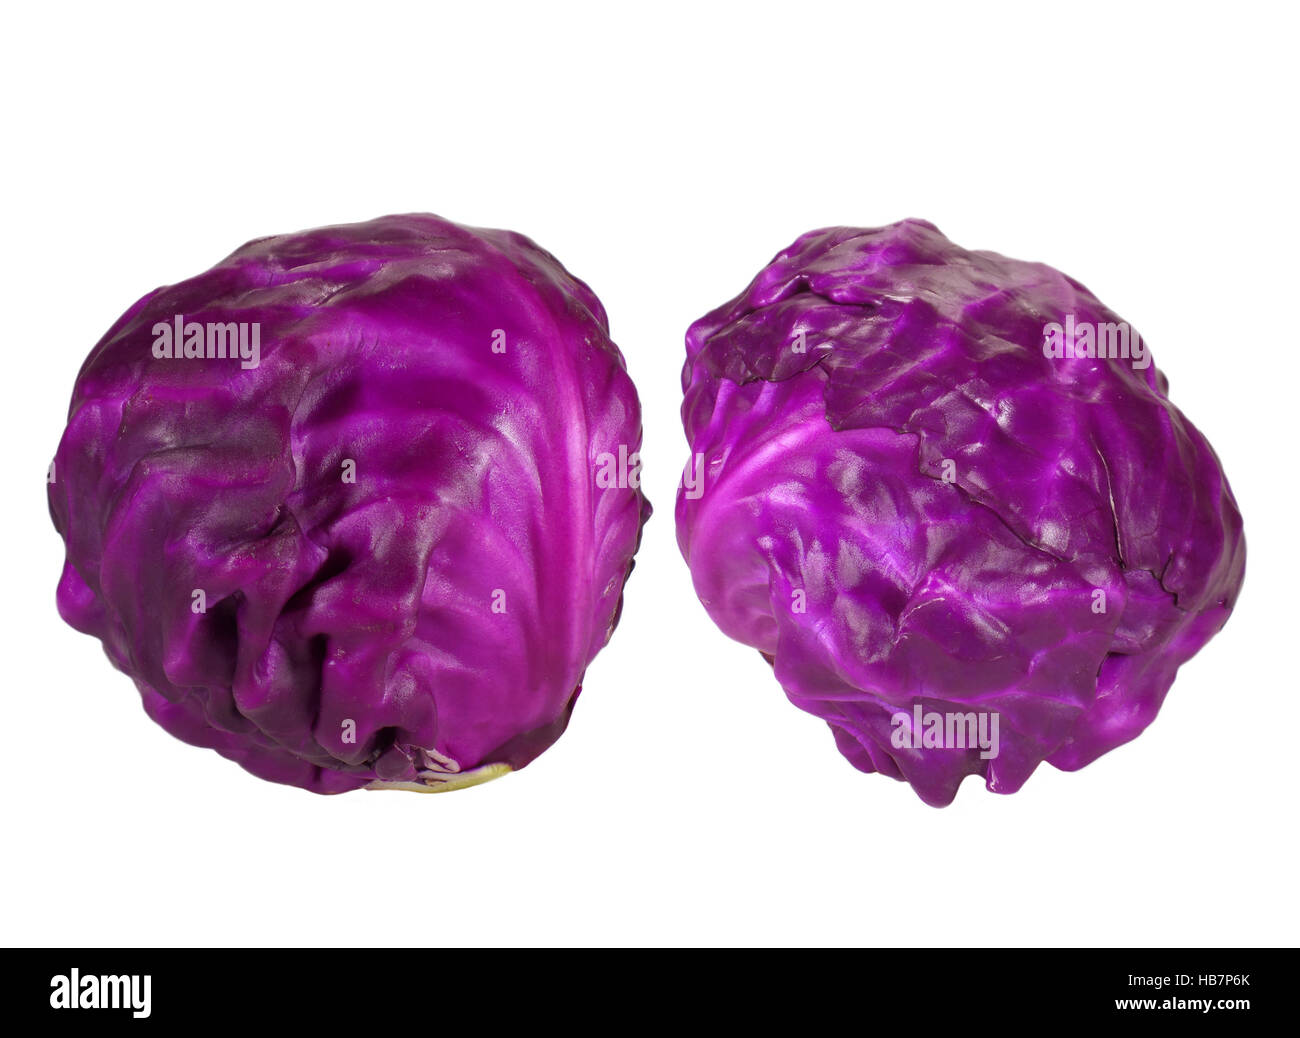 Two fresh whole red ripe cabbages isolated on white background - Stock Image